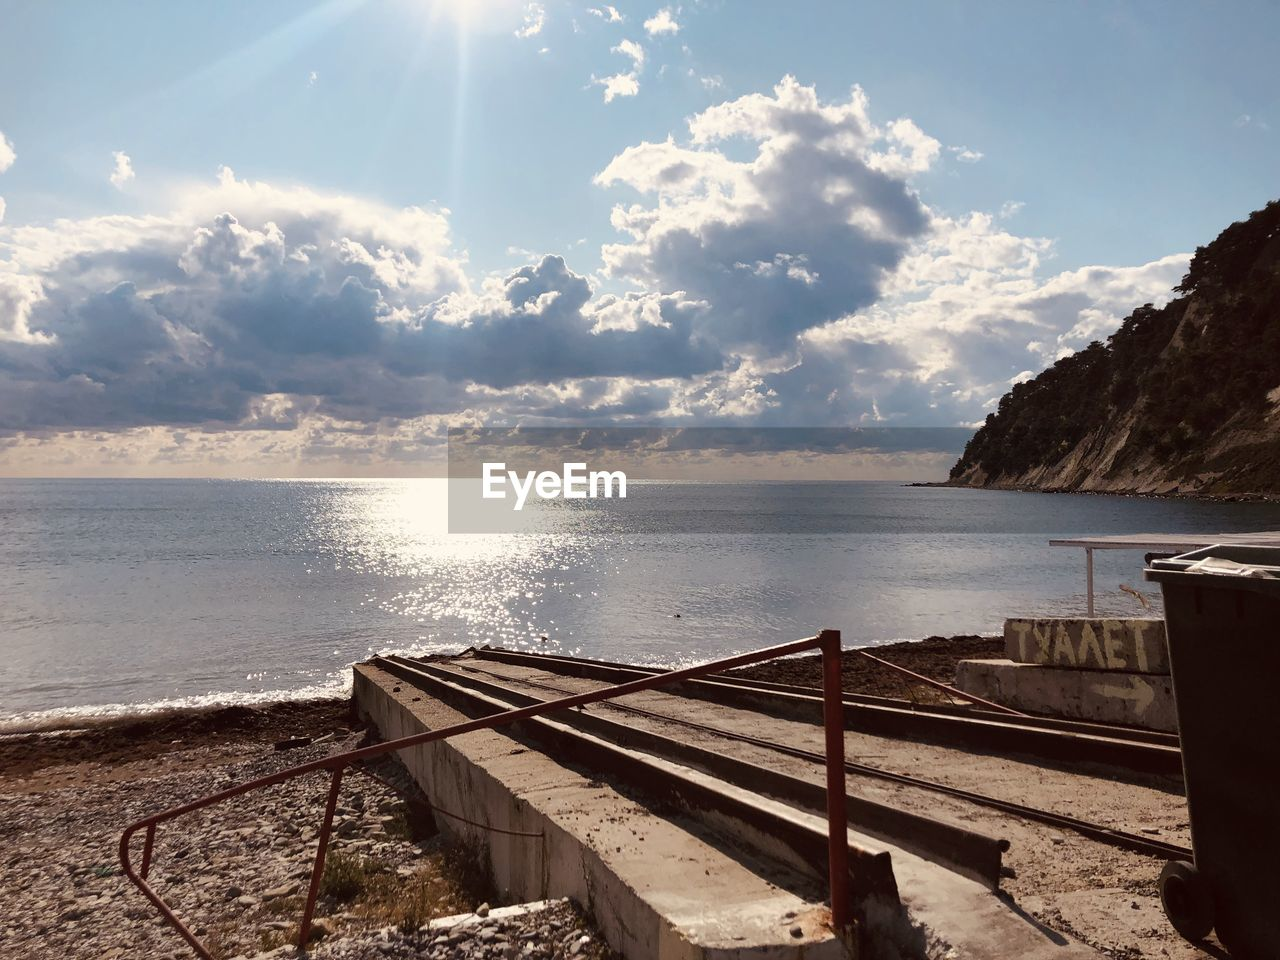 water, sky, sea, cloud - sky, beauty in nature, horizon, tranquility, tranquil scene, sunlight, horizon over water, scenics - nature, nature, land, railing, no people, beach, day, wood - material, non-urban scene, outdoors, sun, lens flare